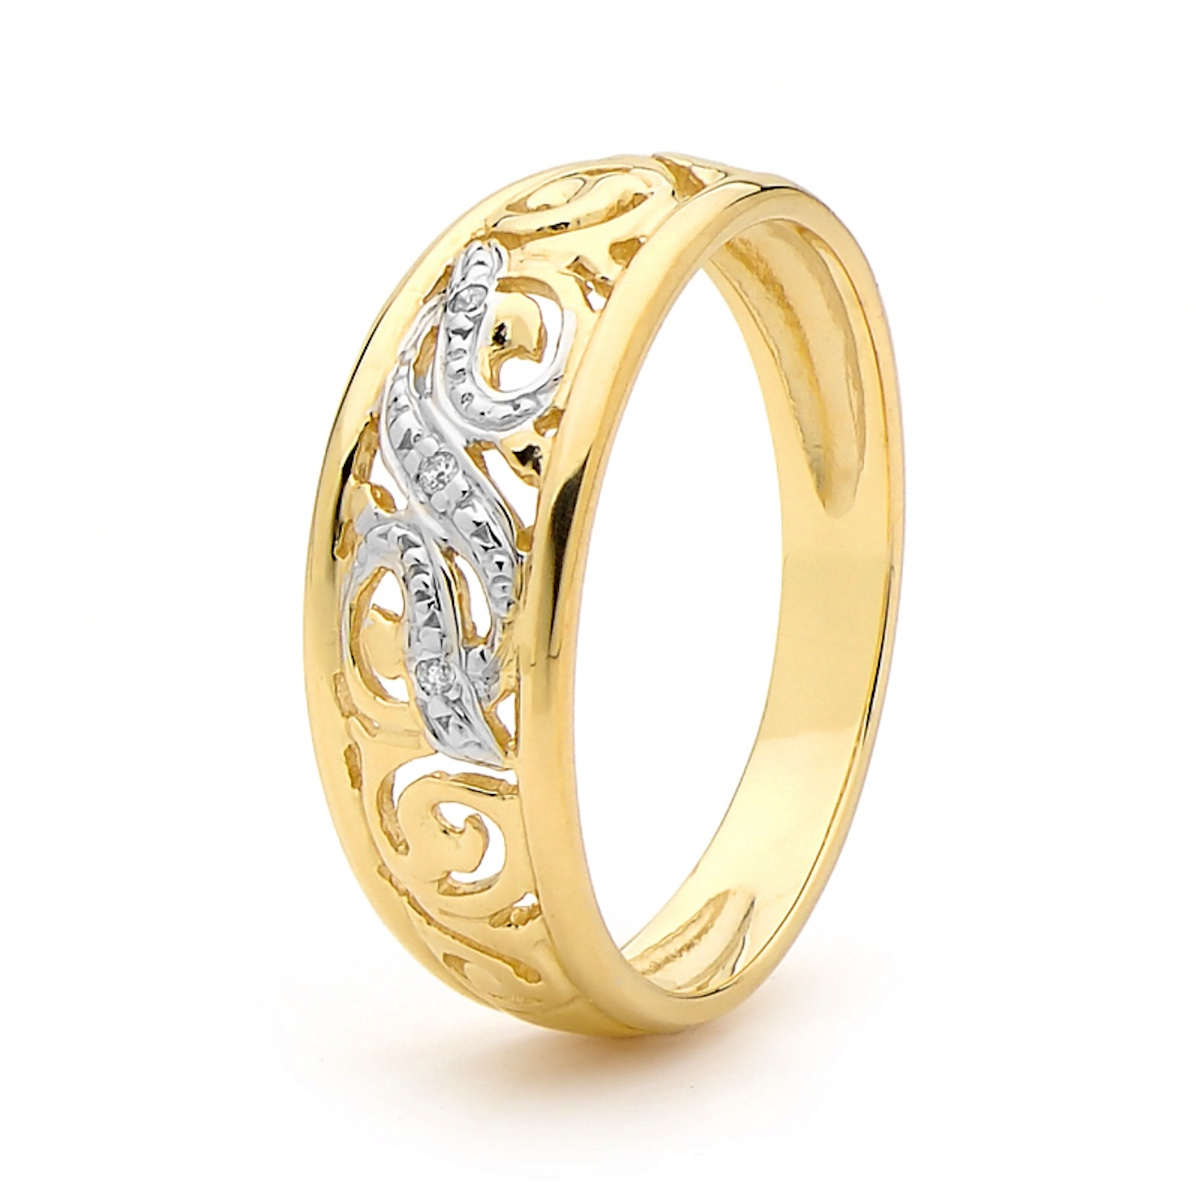 Diamond Love Ring with Celtic Carving (S)